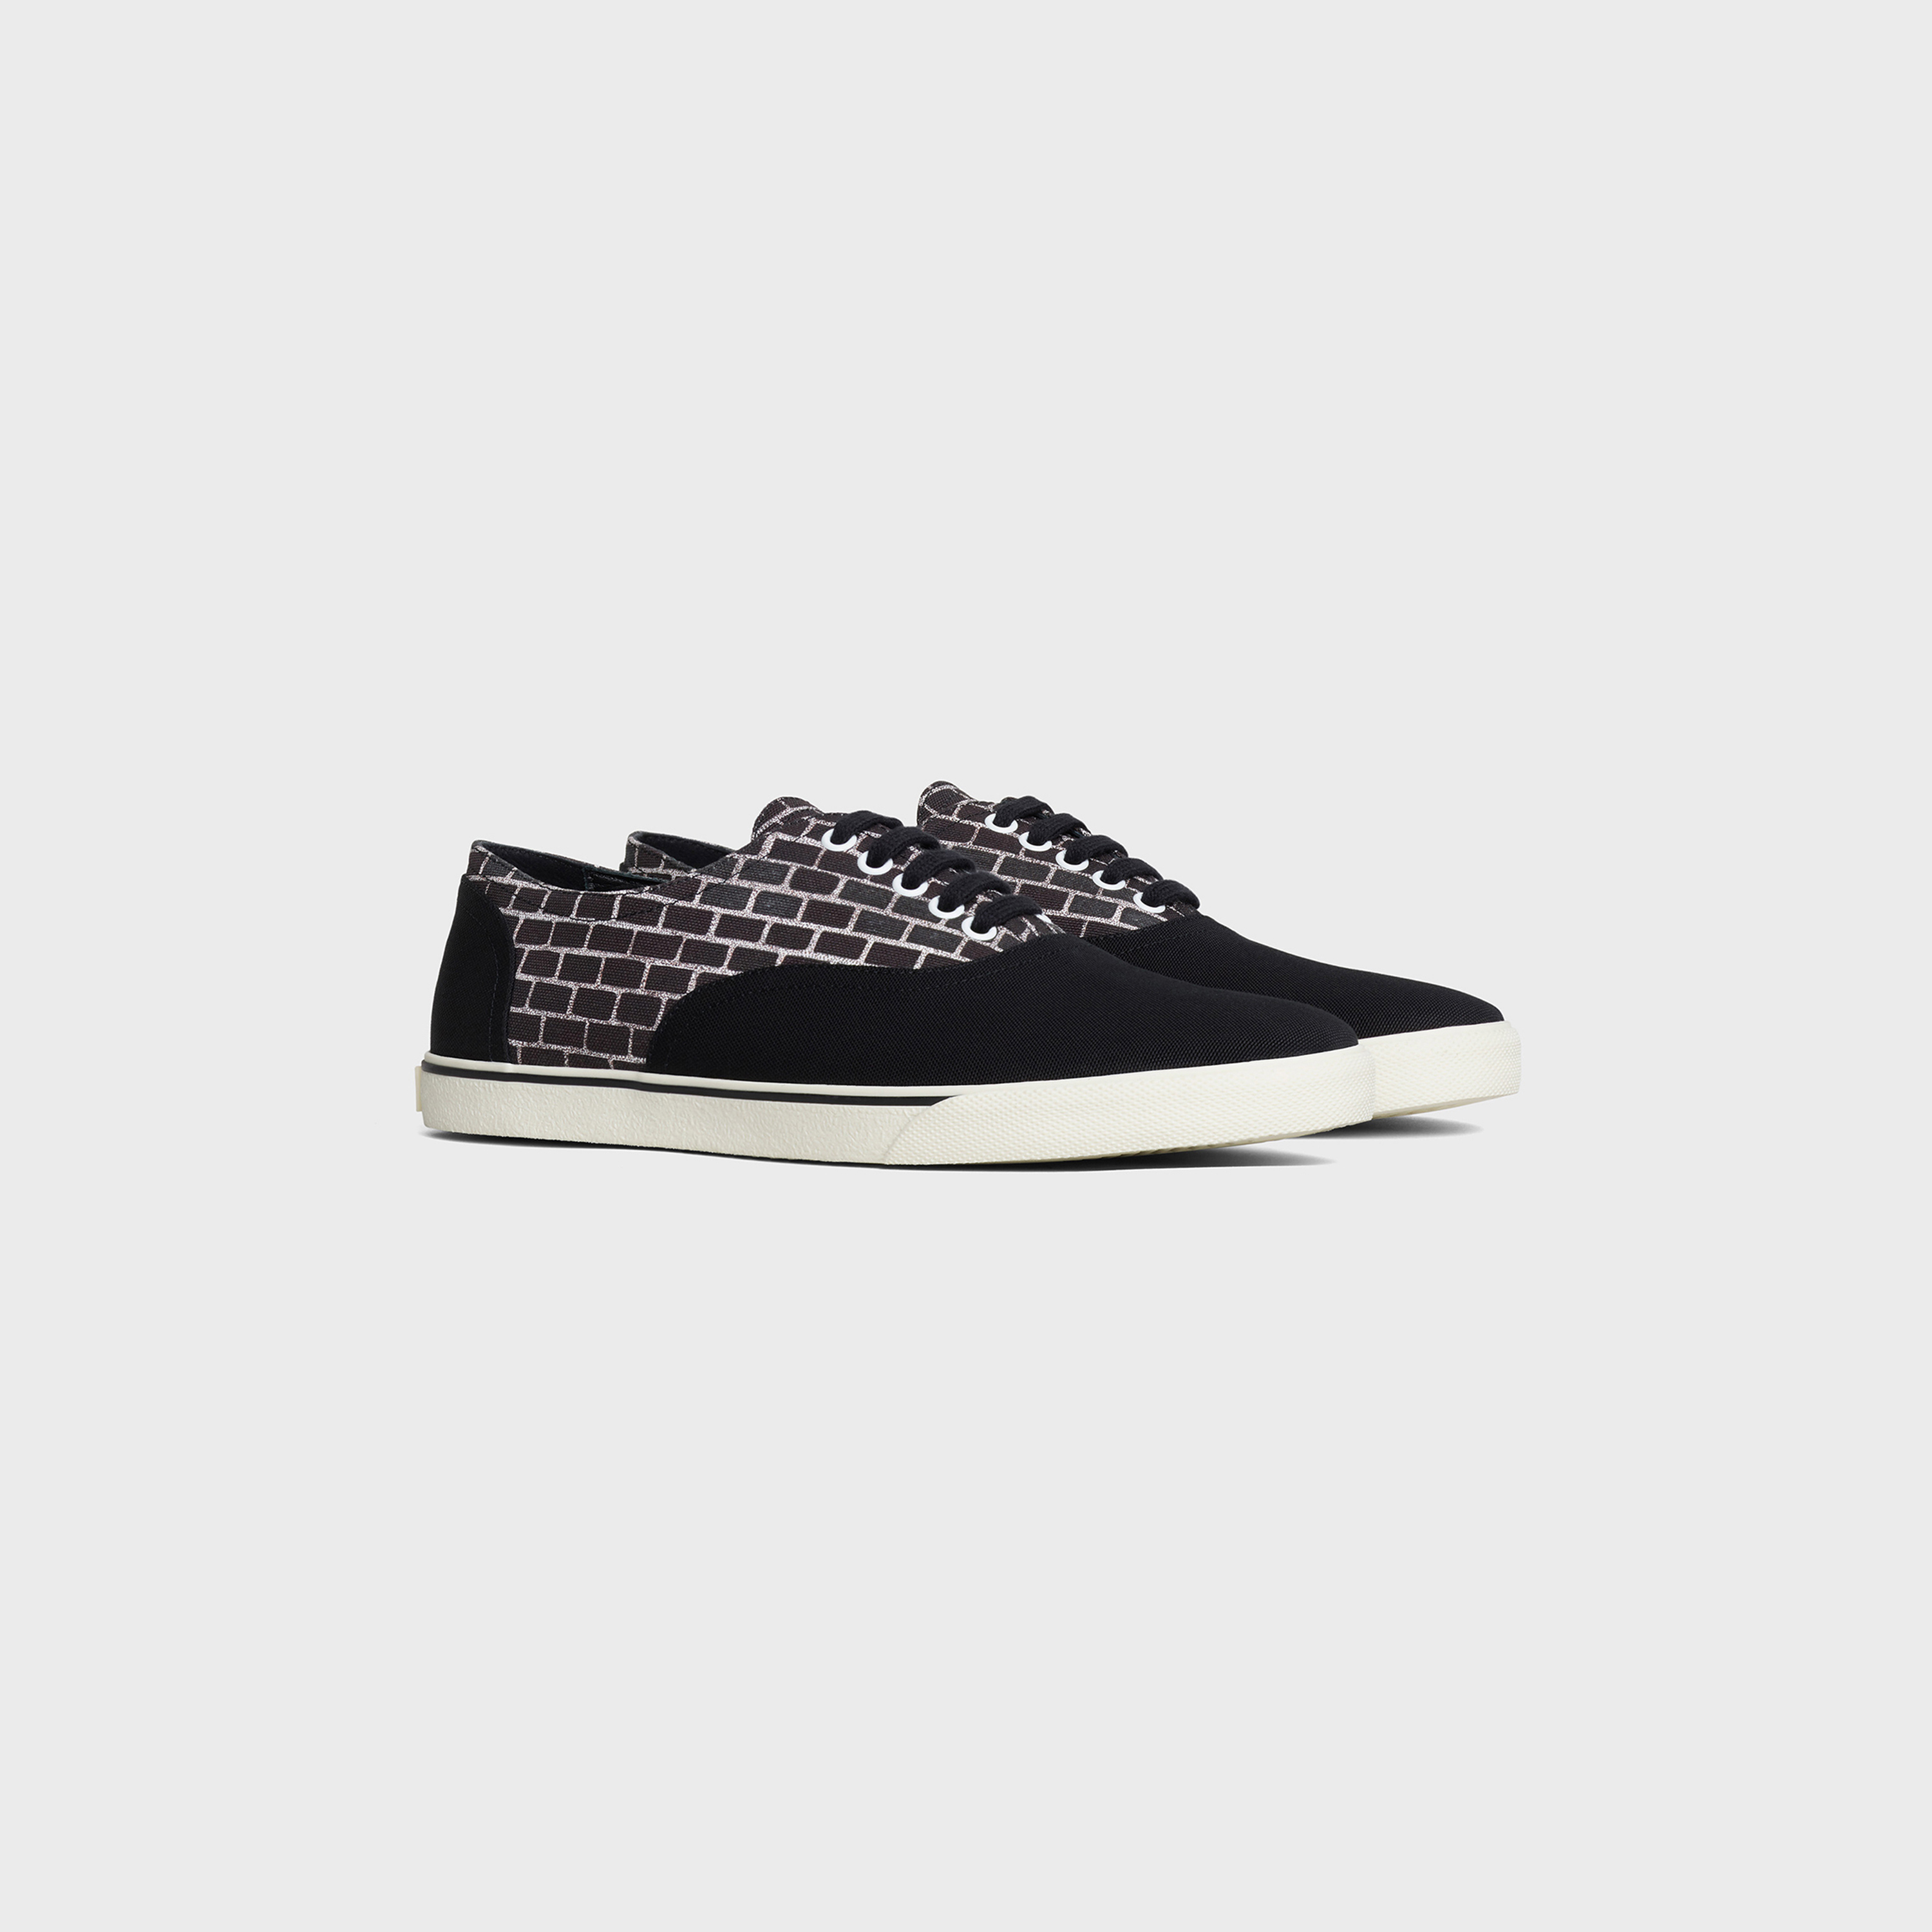 CELINE ELLIOT Low lace up sneaker in Canvas & Anneli Henriksson 'Electric brick wall' printed canvas | CELINE